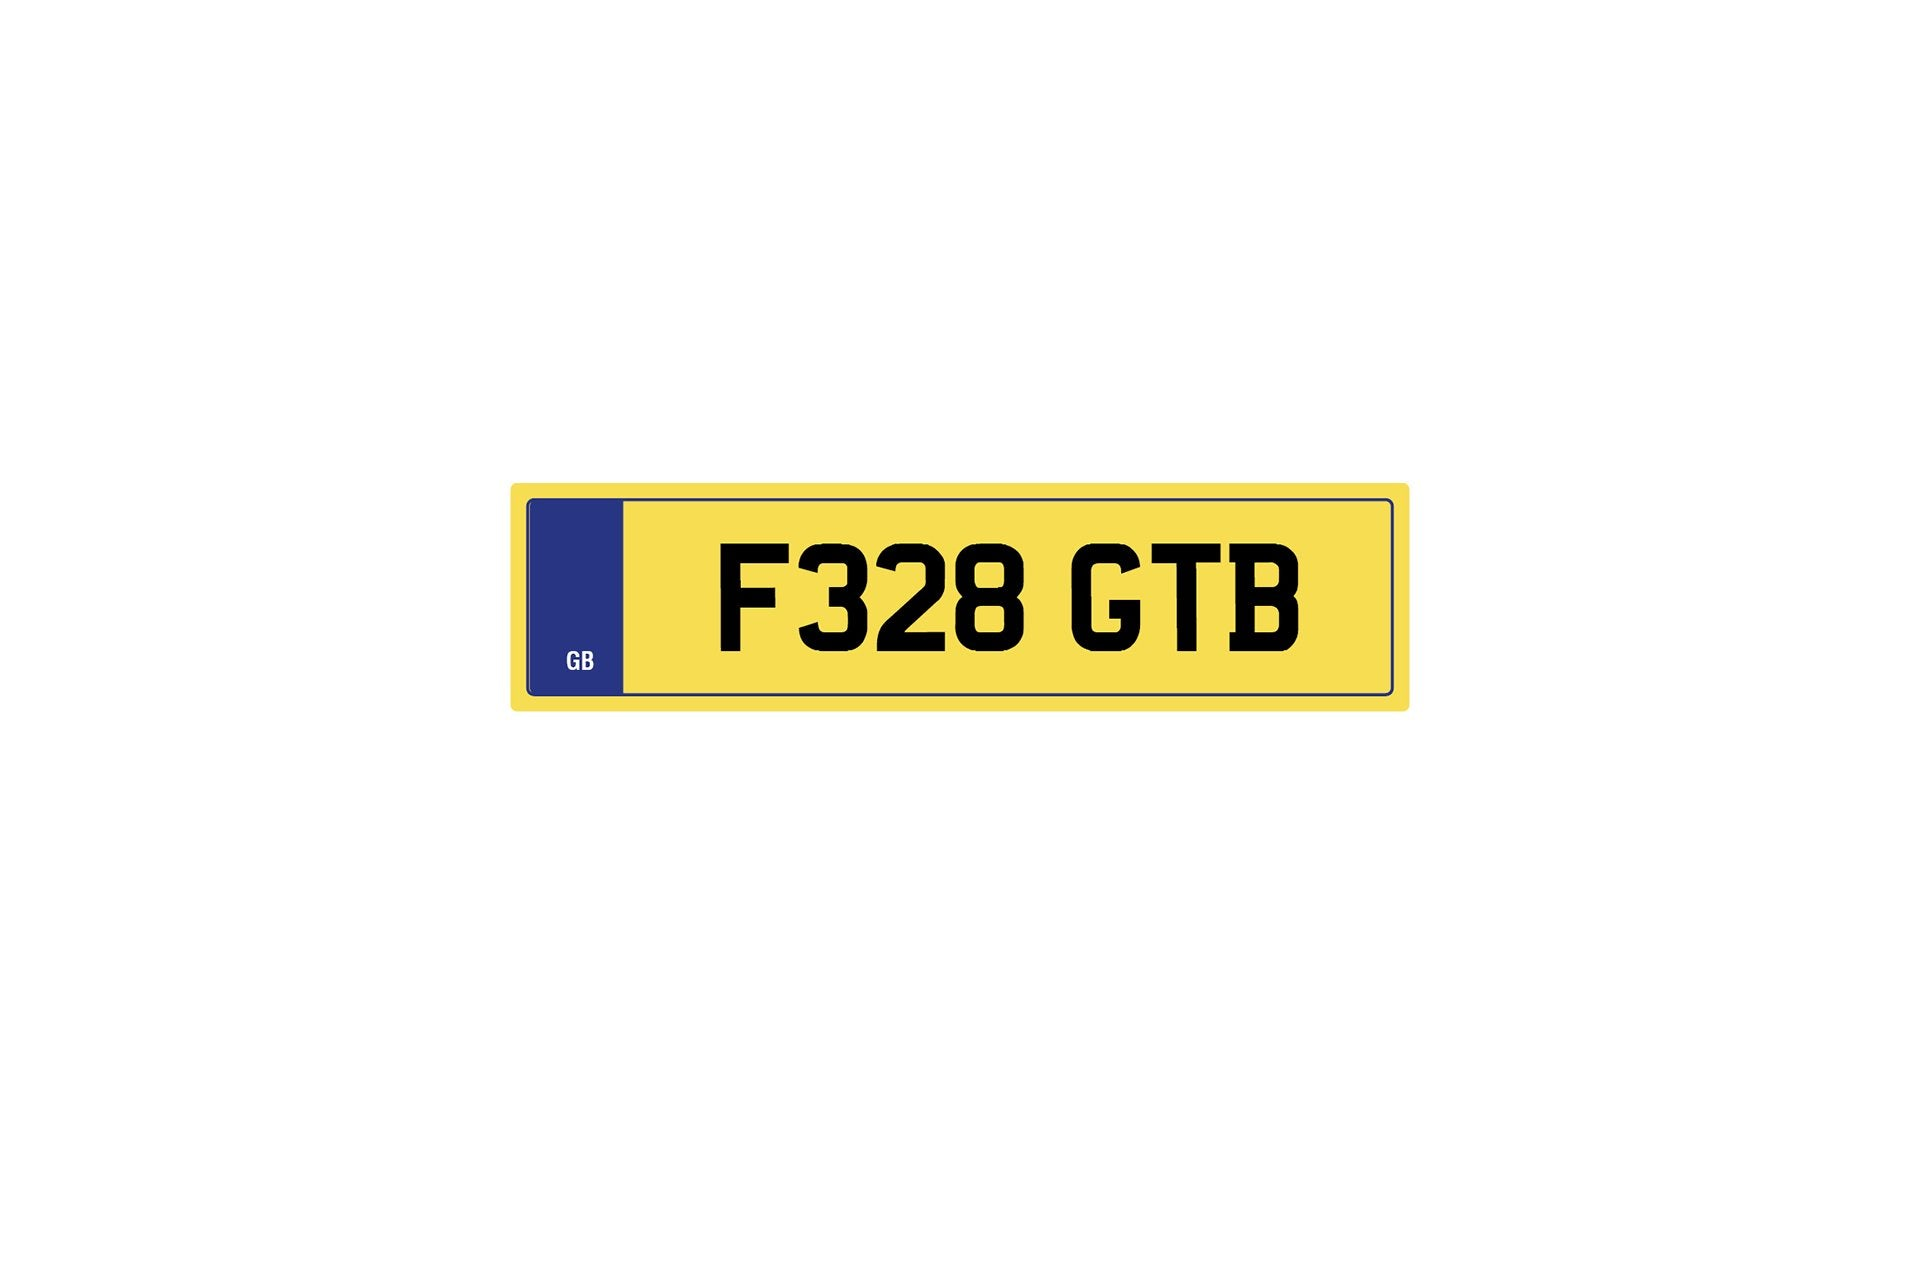 Private Plate F328 Gtb by Kahn - Image 243